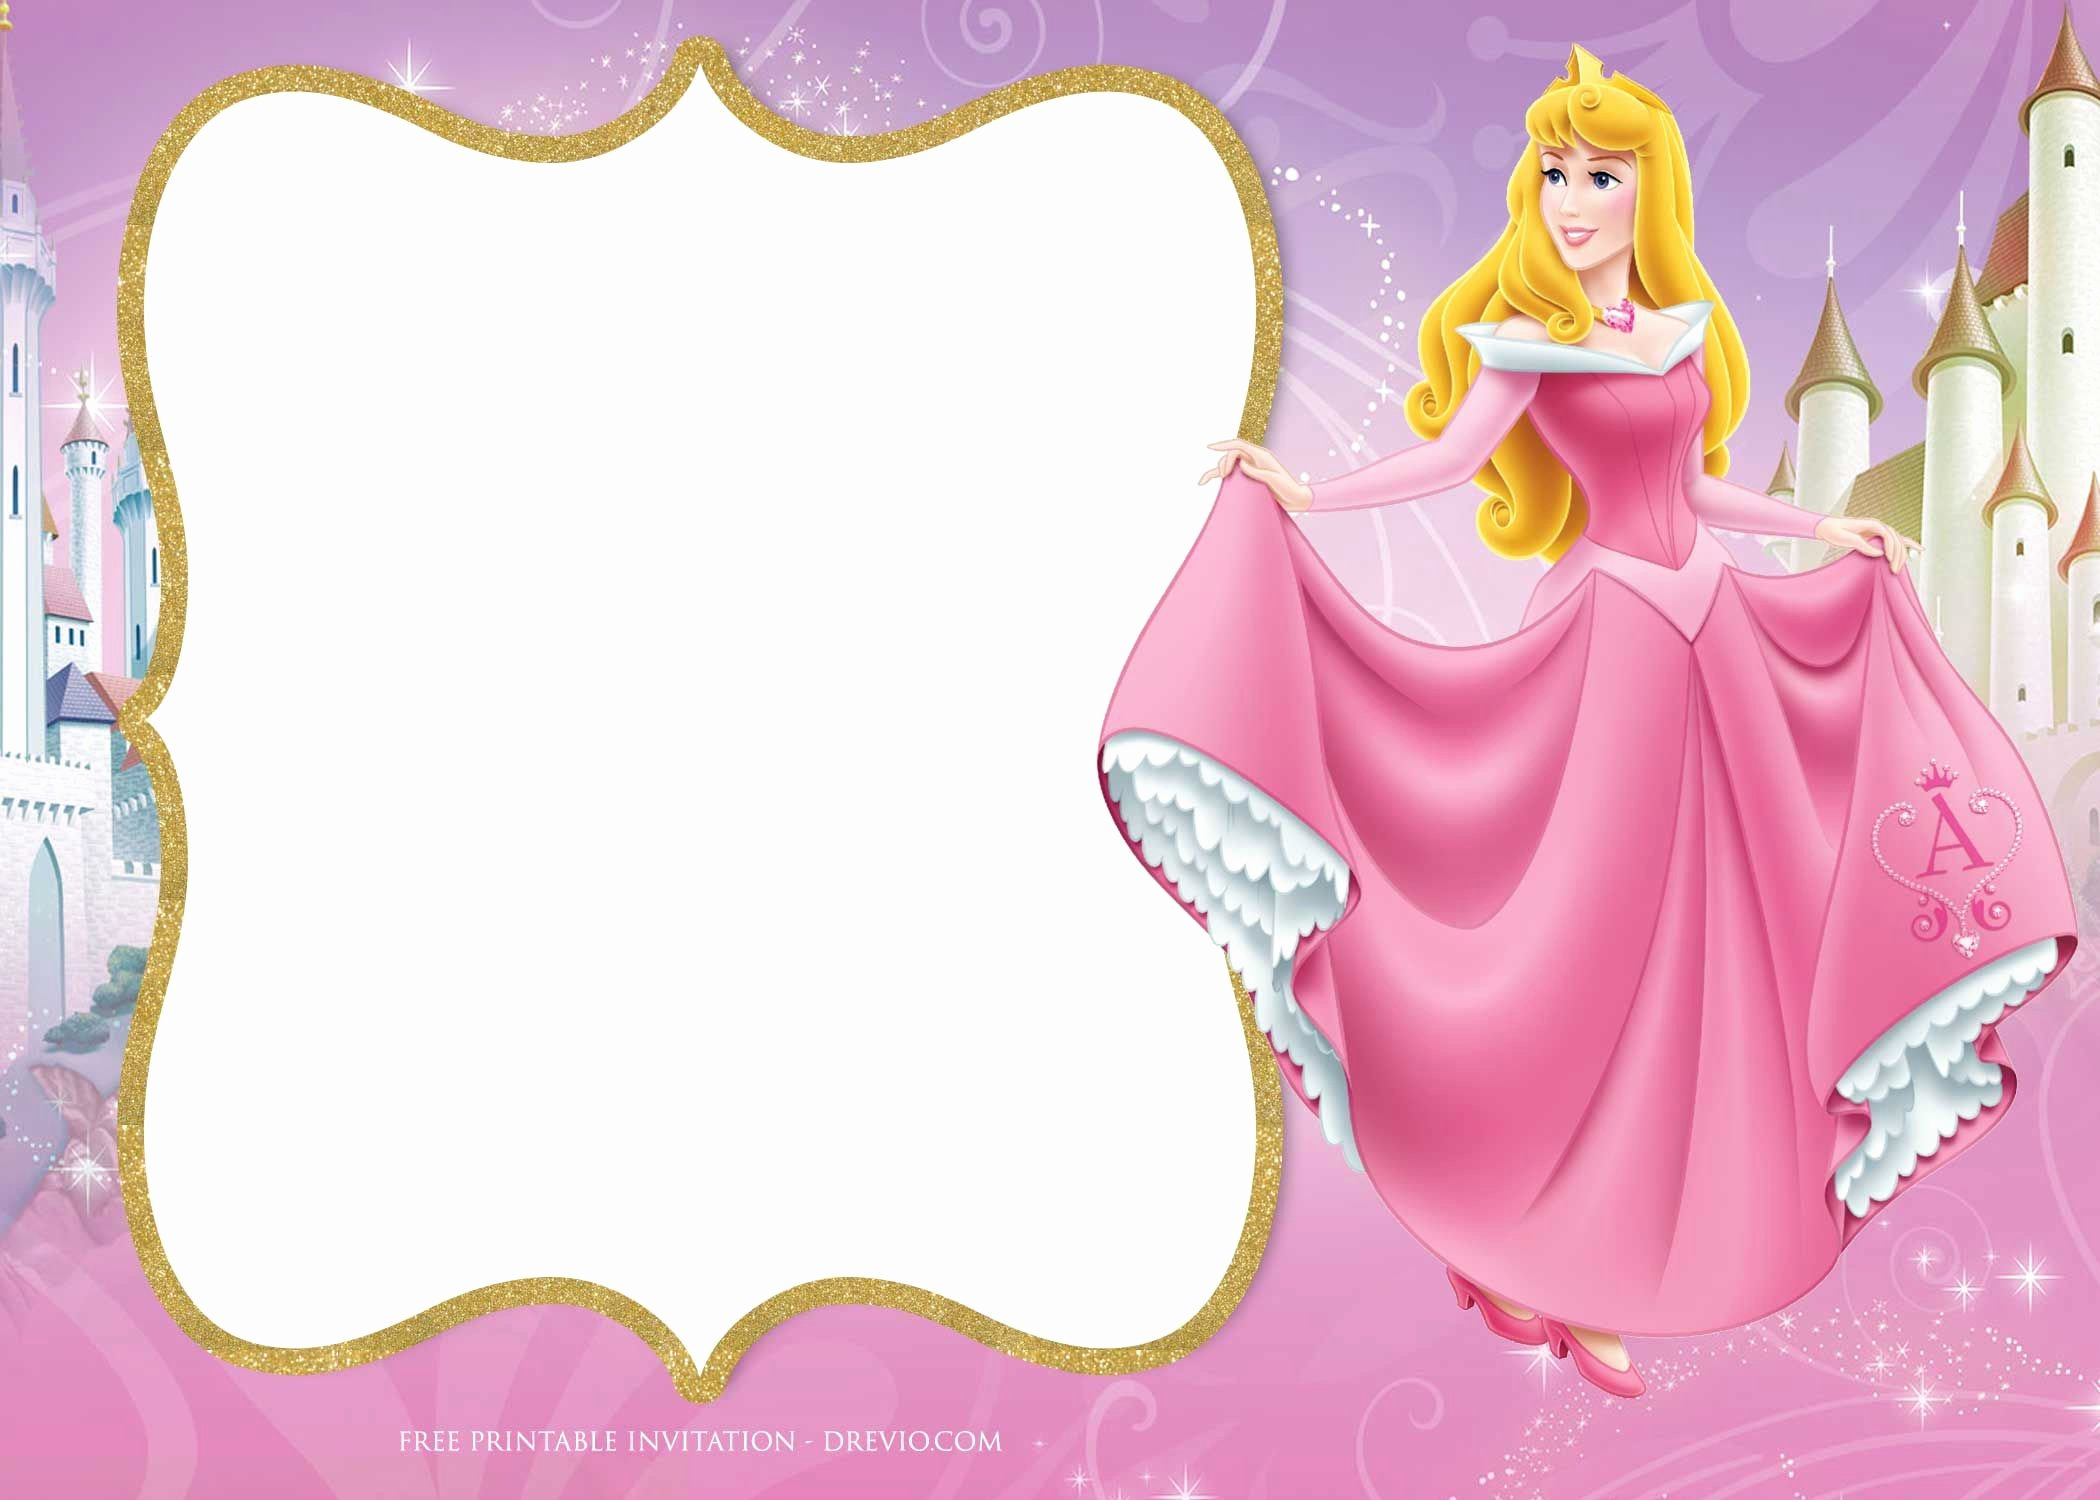 Disney Princess Invitation Templates Free Luxury Free Printable Princess Aurora Sleeping Beauty Invitation